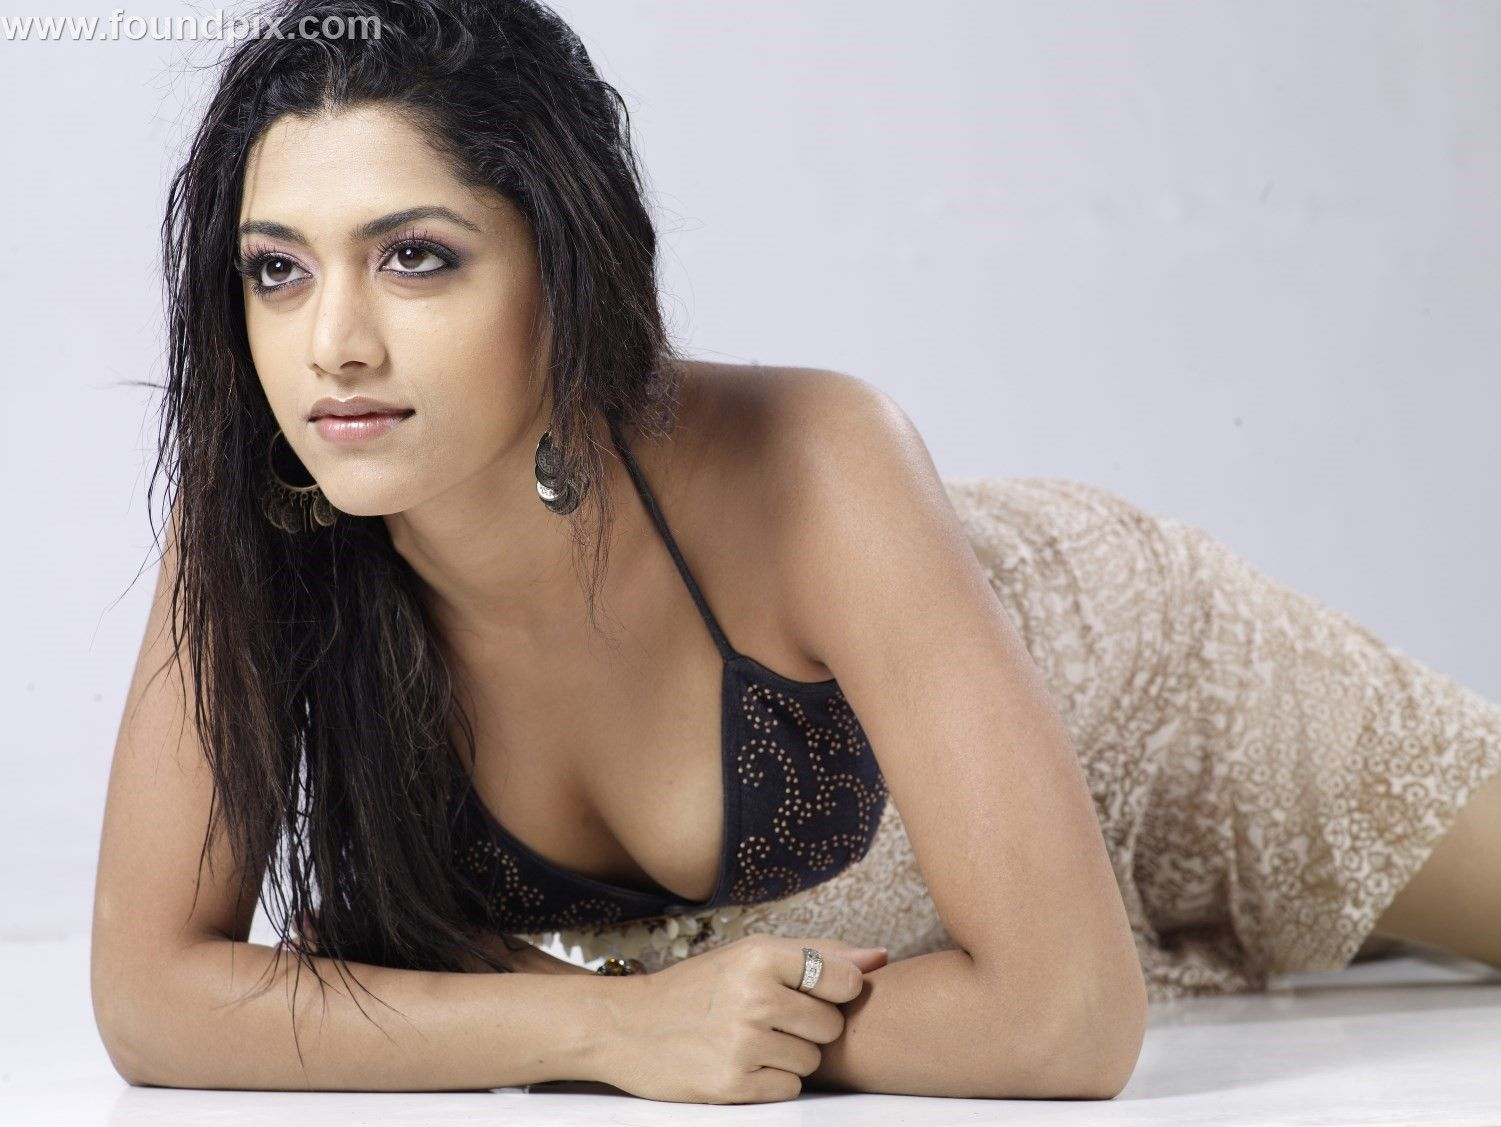 mohandas pics hd boobs hot, Mamtha sexy